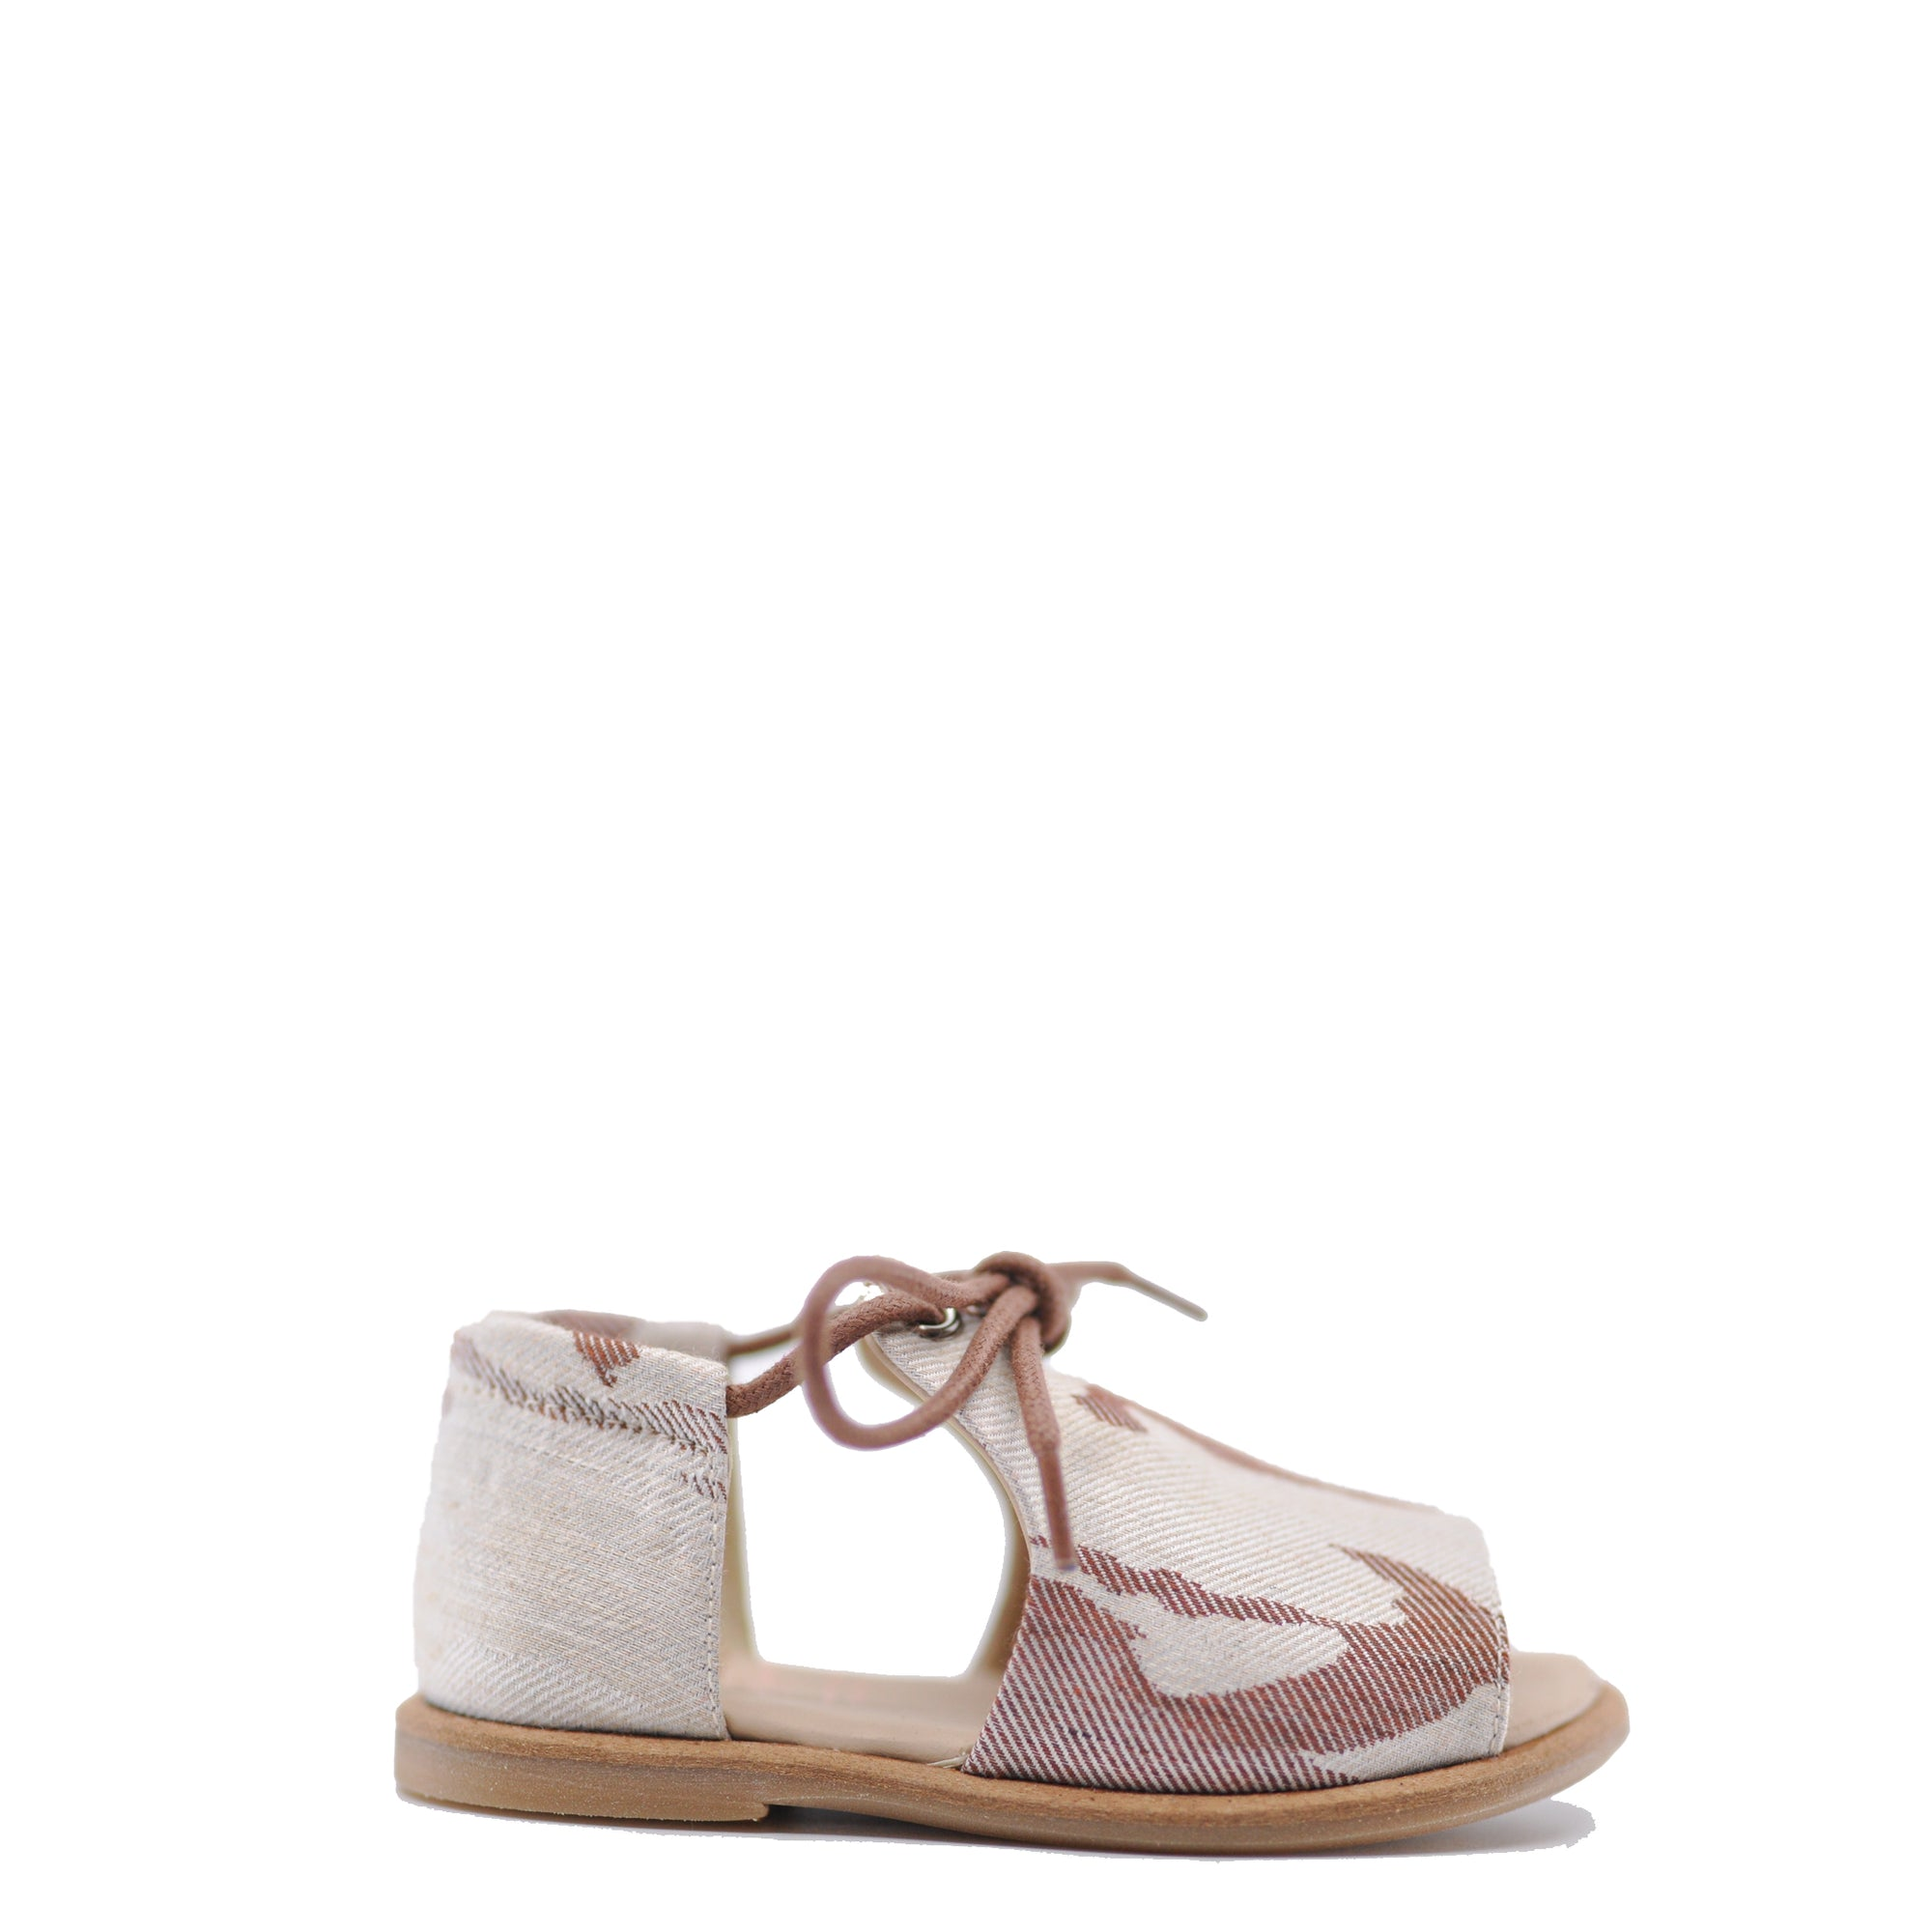 Manuela Brown Pattern Baby Sandal-Tassel Children Shoes